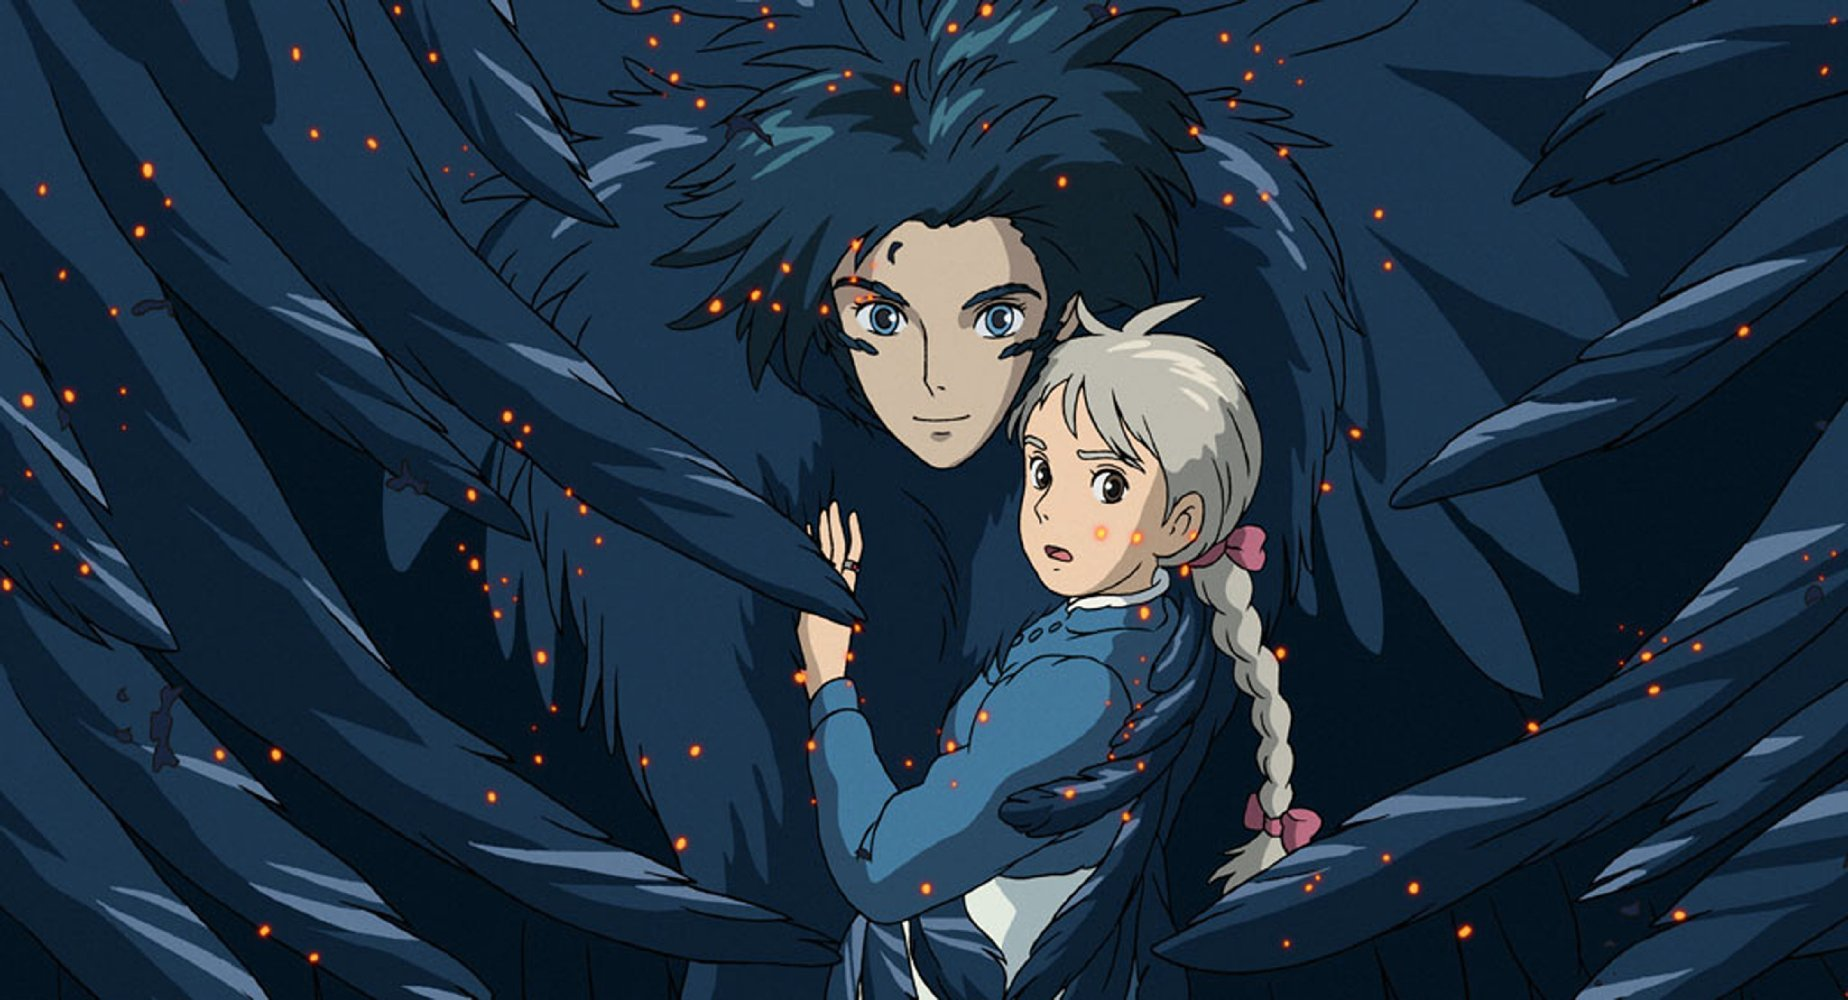 Watch Howl's Moving Castle full movie online